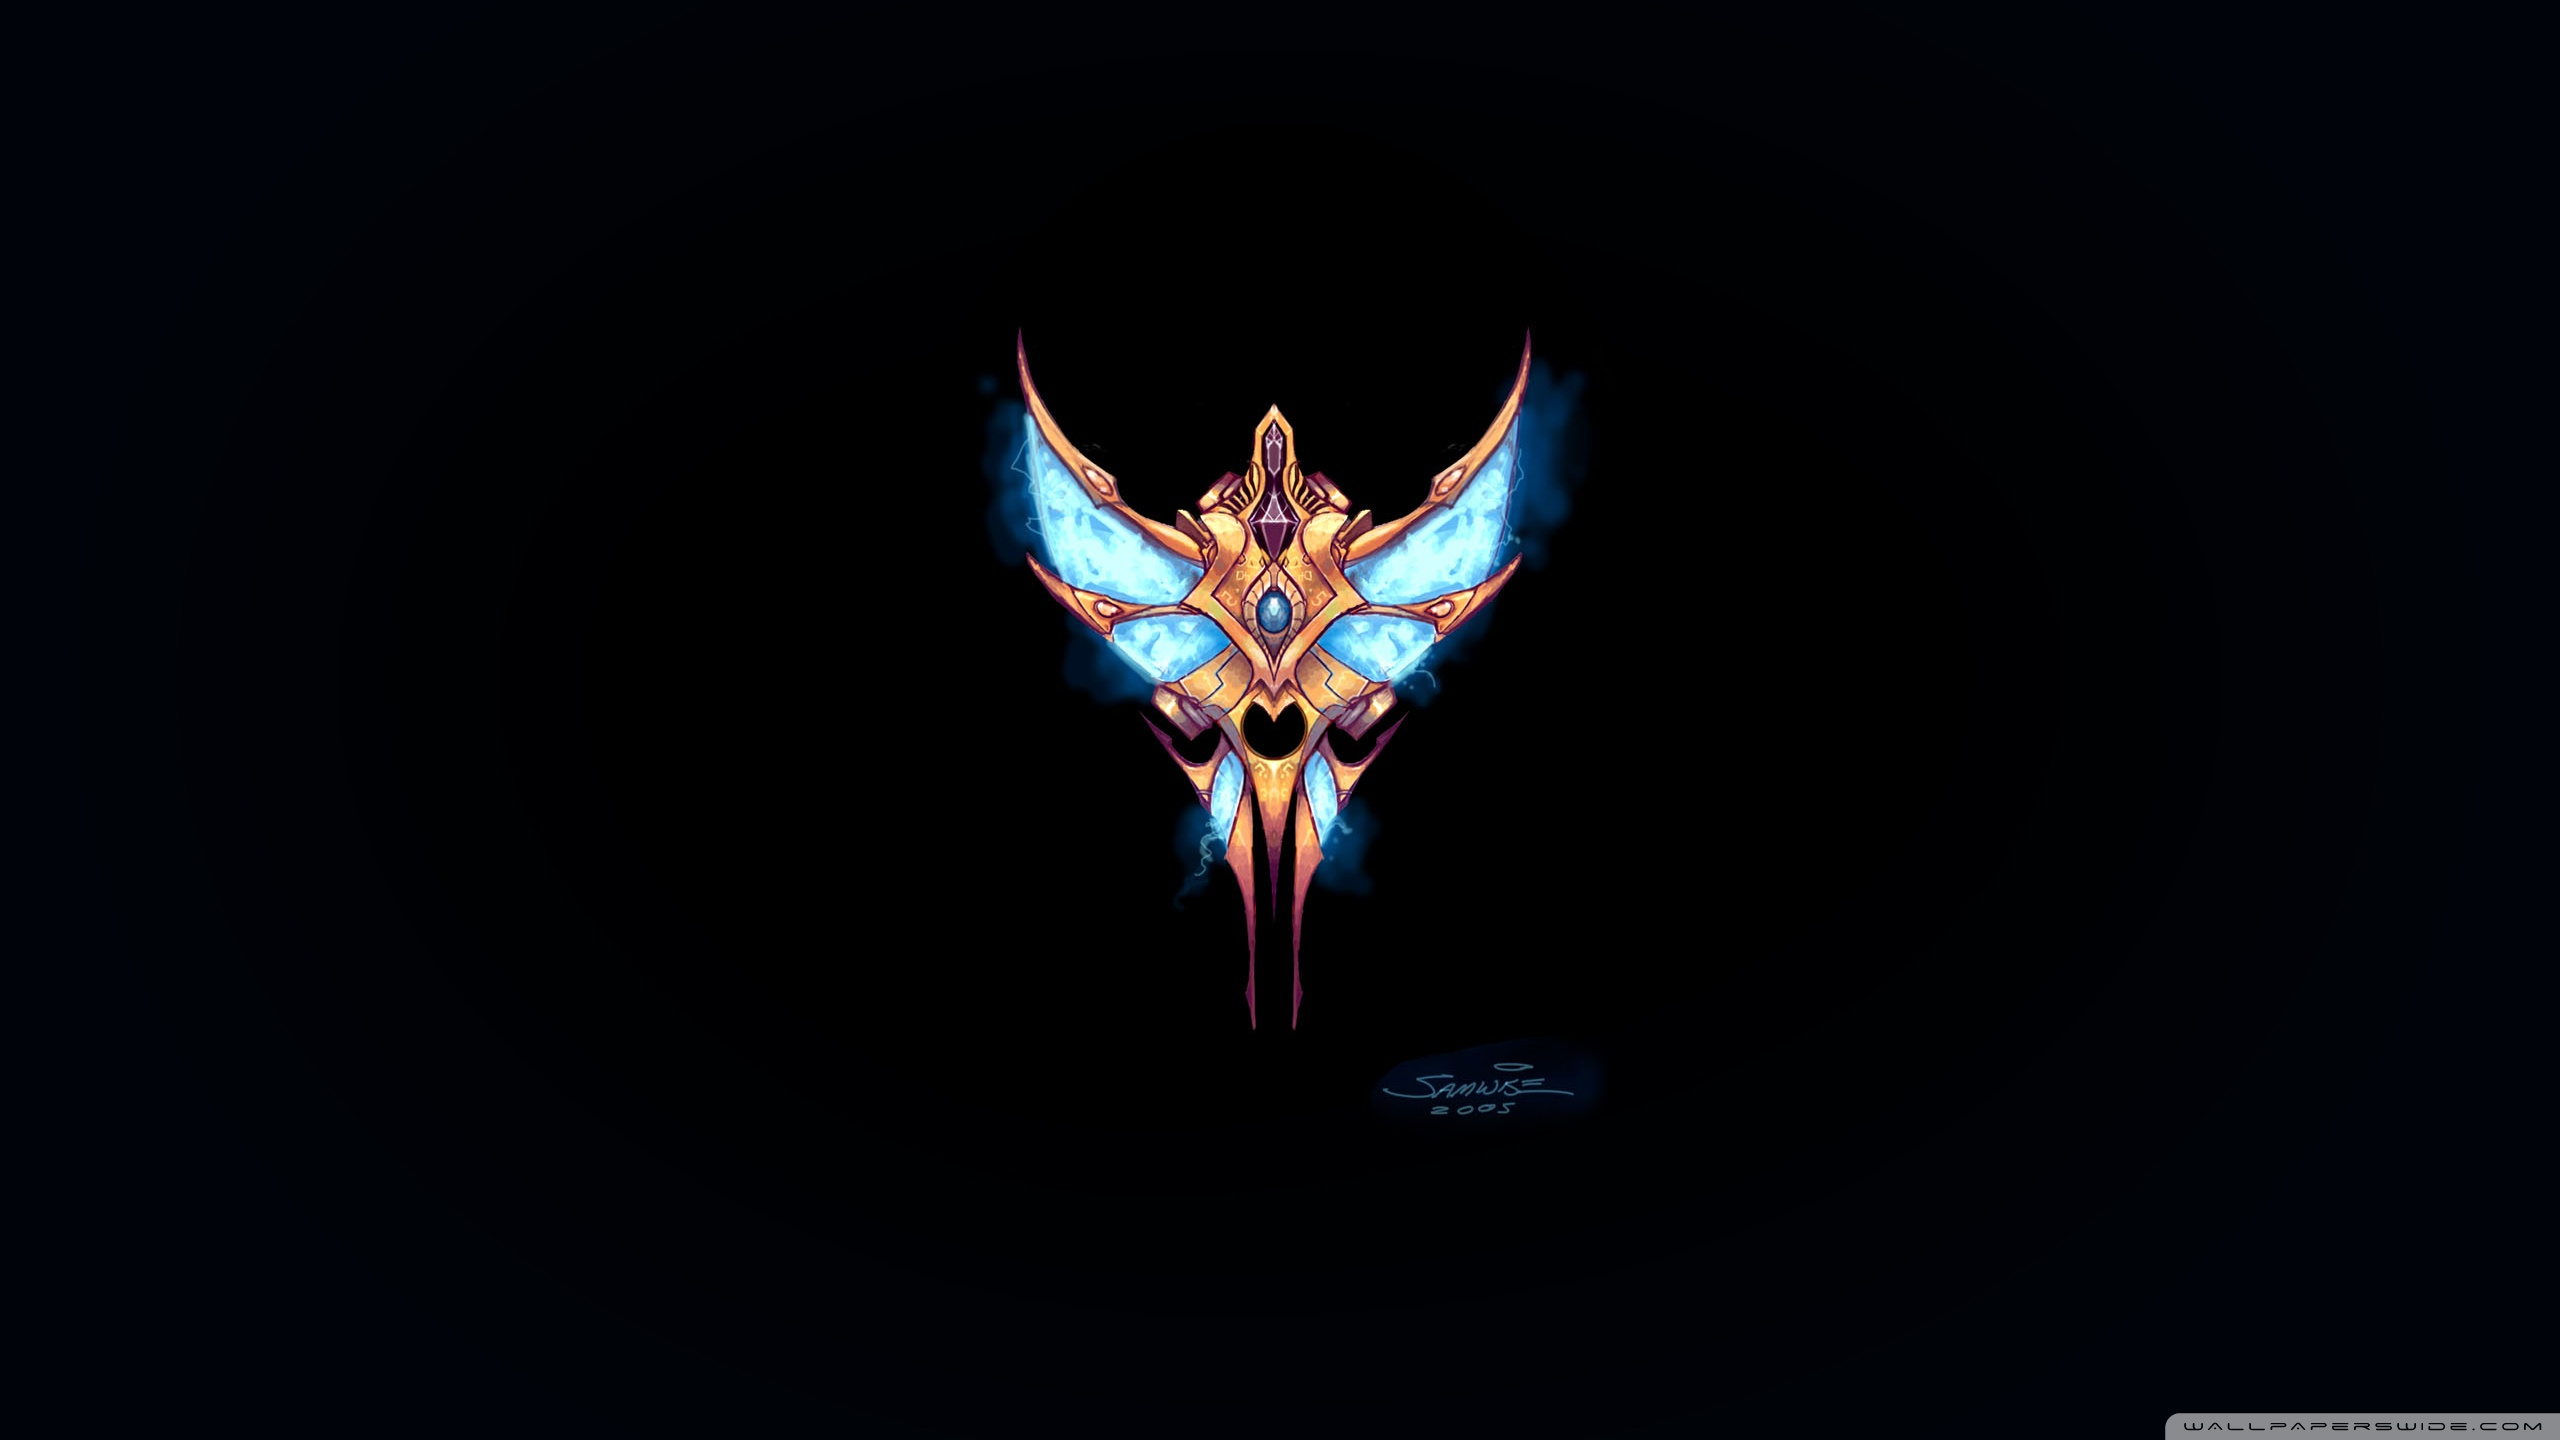 Starcraft Protoss Wallpaper posted by Michelle Thompson 2560x1440